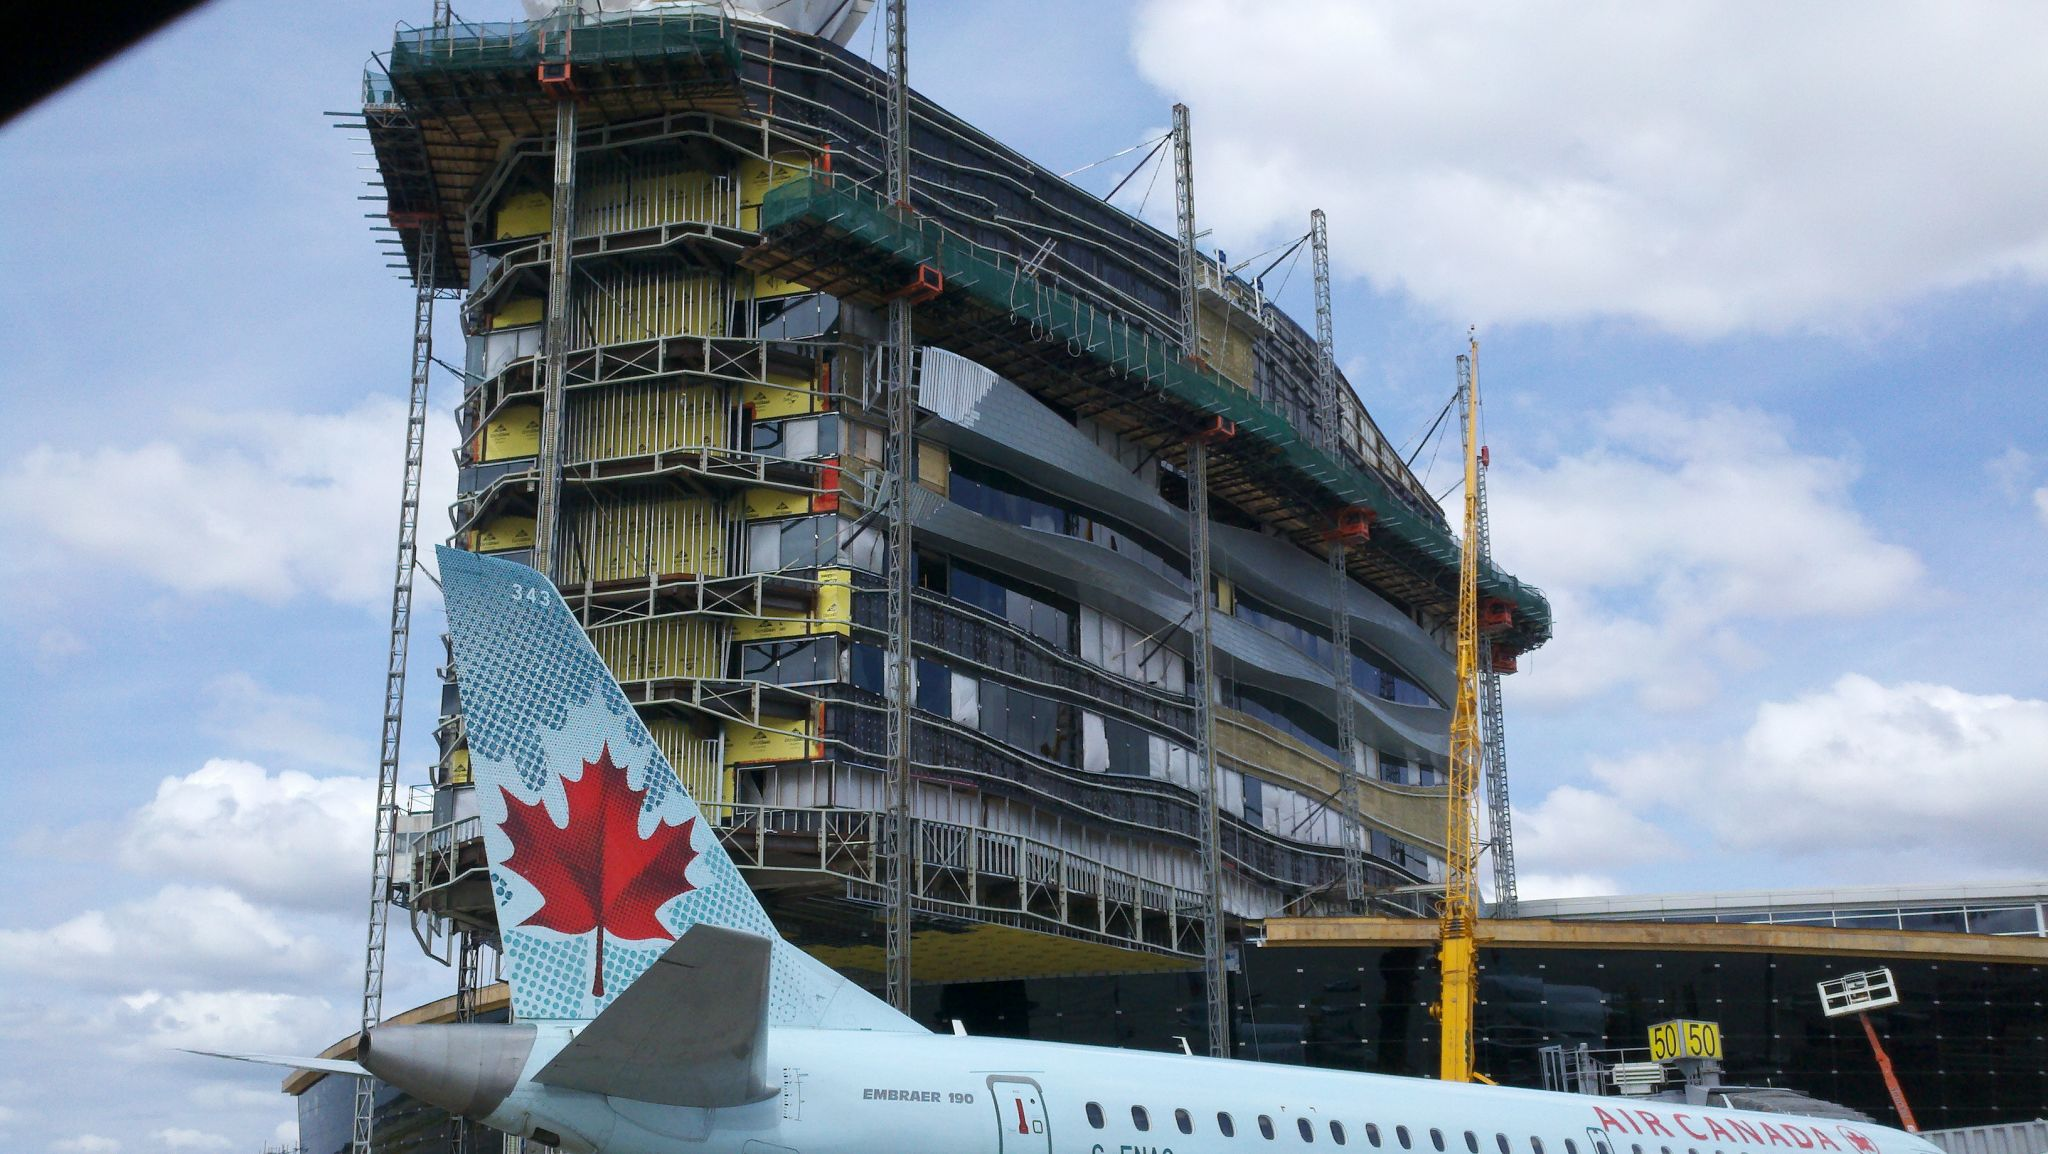 The project, completed earlier this year, will serve as a unique icon for Edmonton's airport—aerial wayfi nding for the six million who use the facility each year.